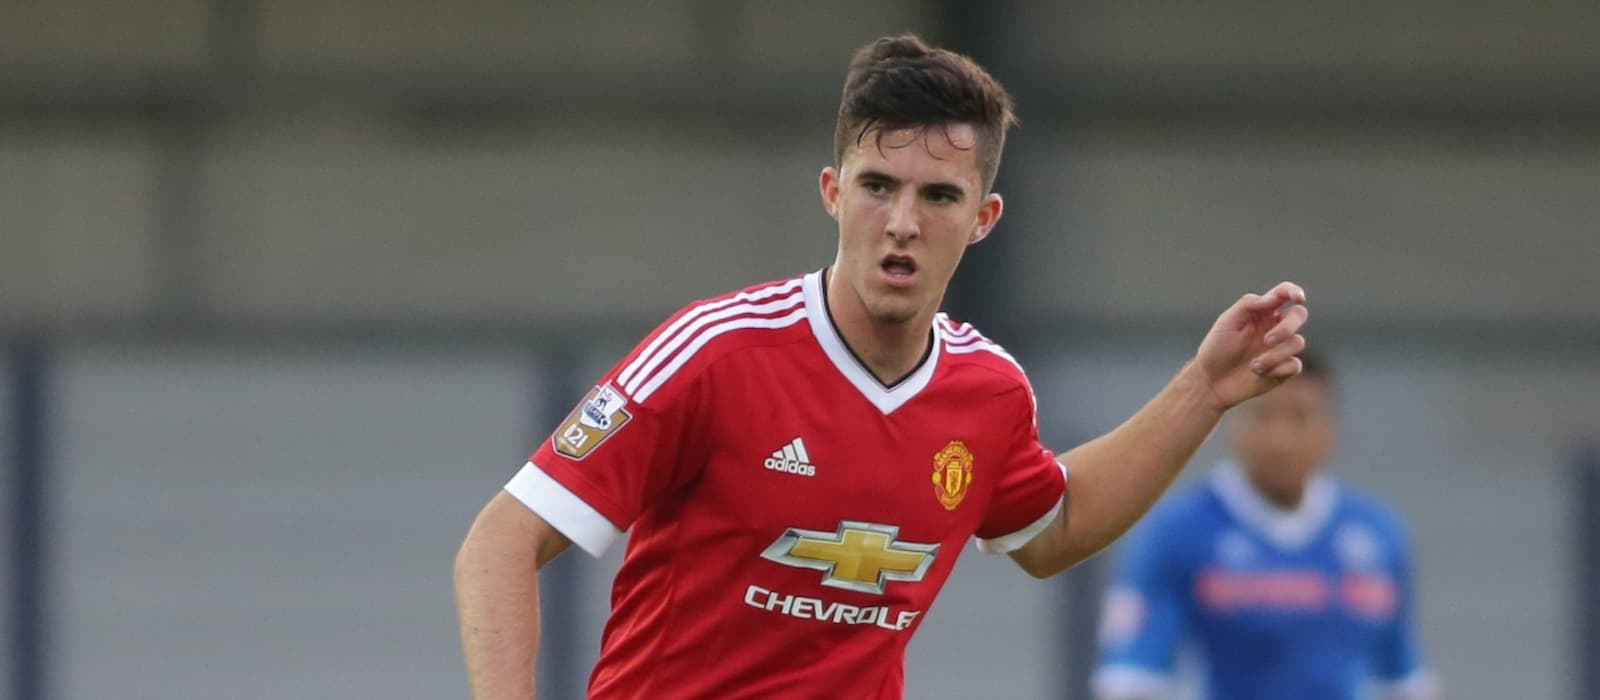 QPR director confirms progress on Sean Goss move from Manchester United